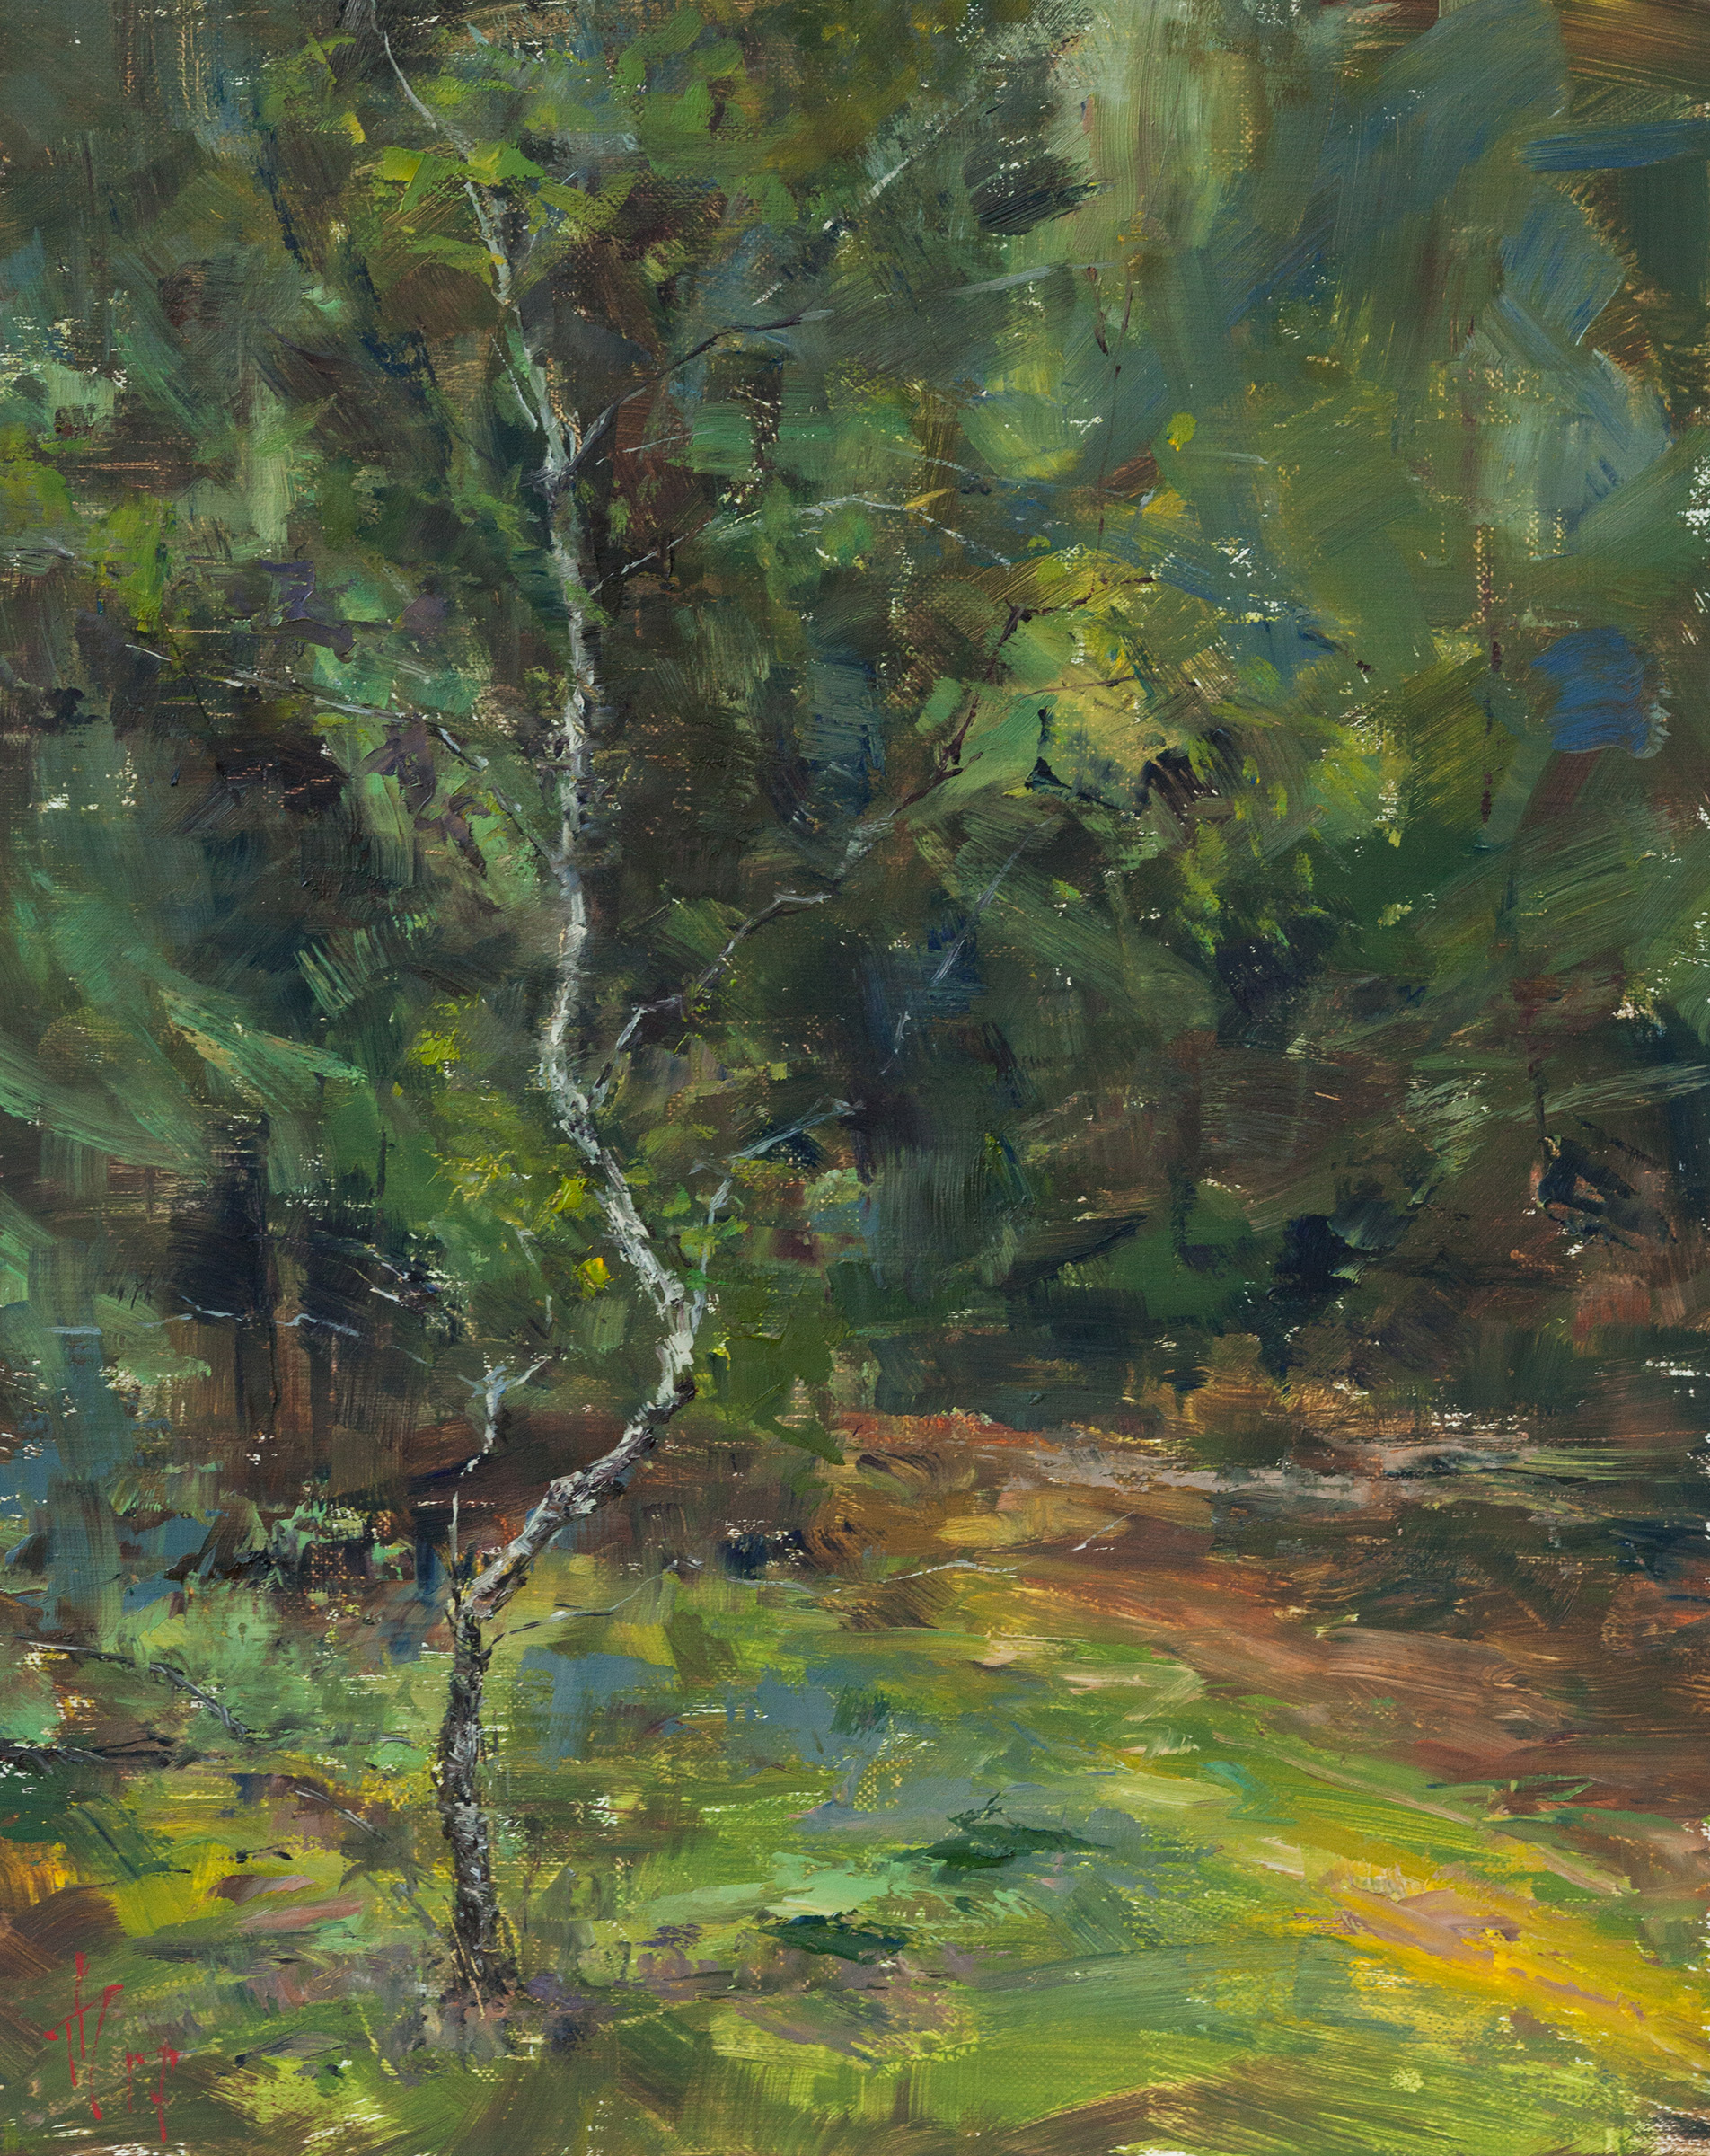 Andrei Tchernoukha, Lonely birch, Oil on linen panel, 30 x 24 x 0.5,  http://atchern.com